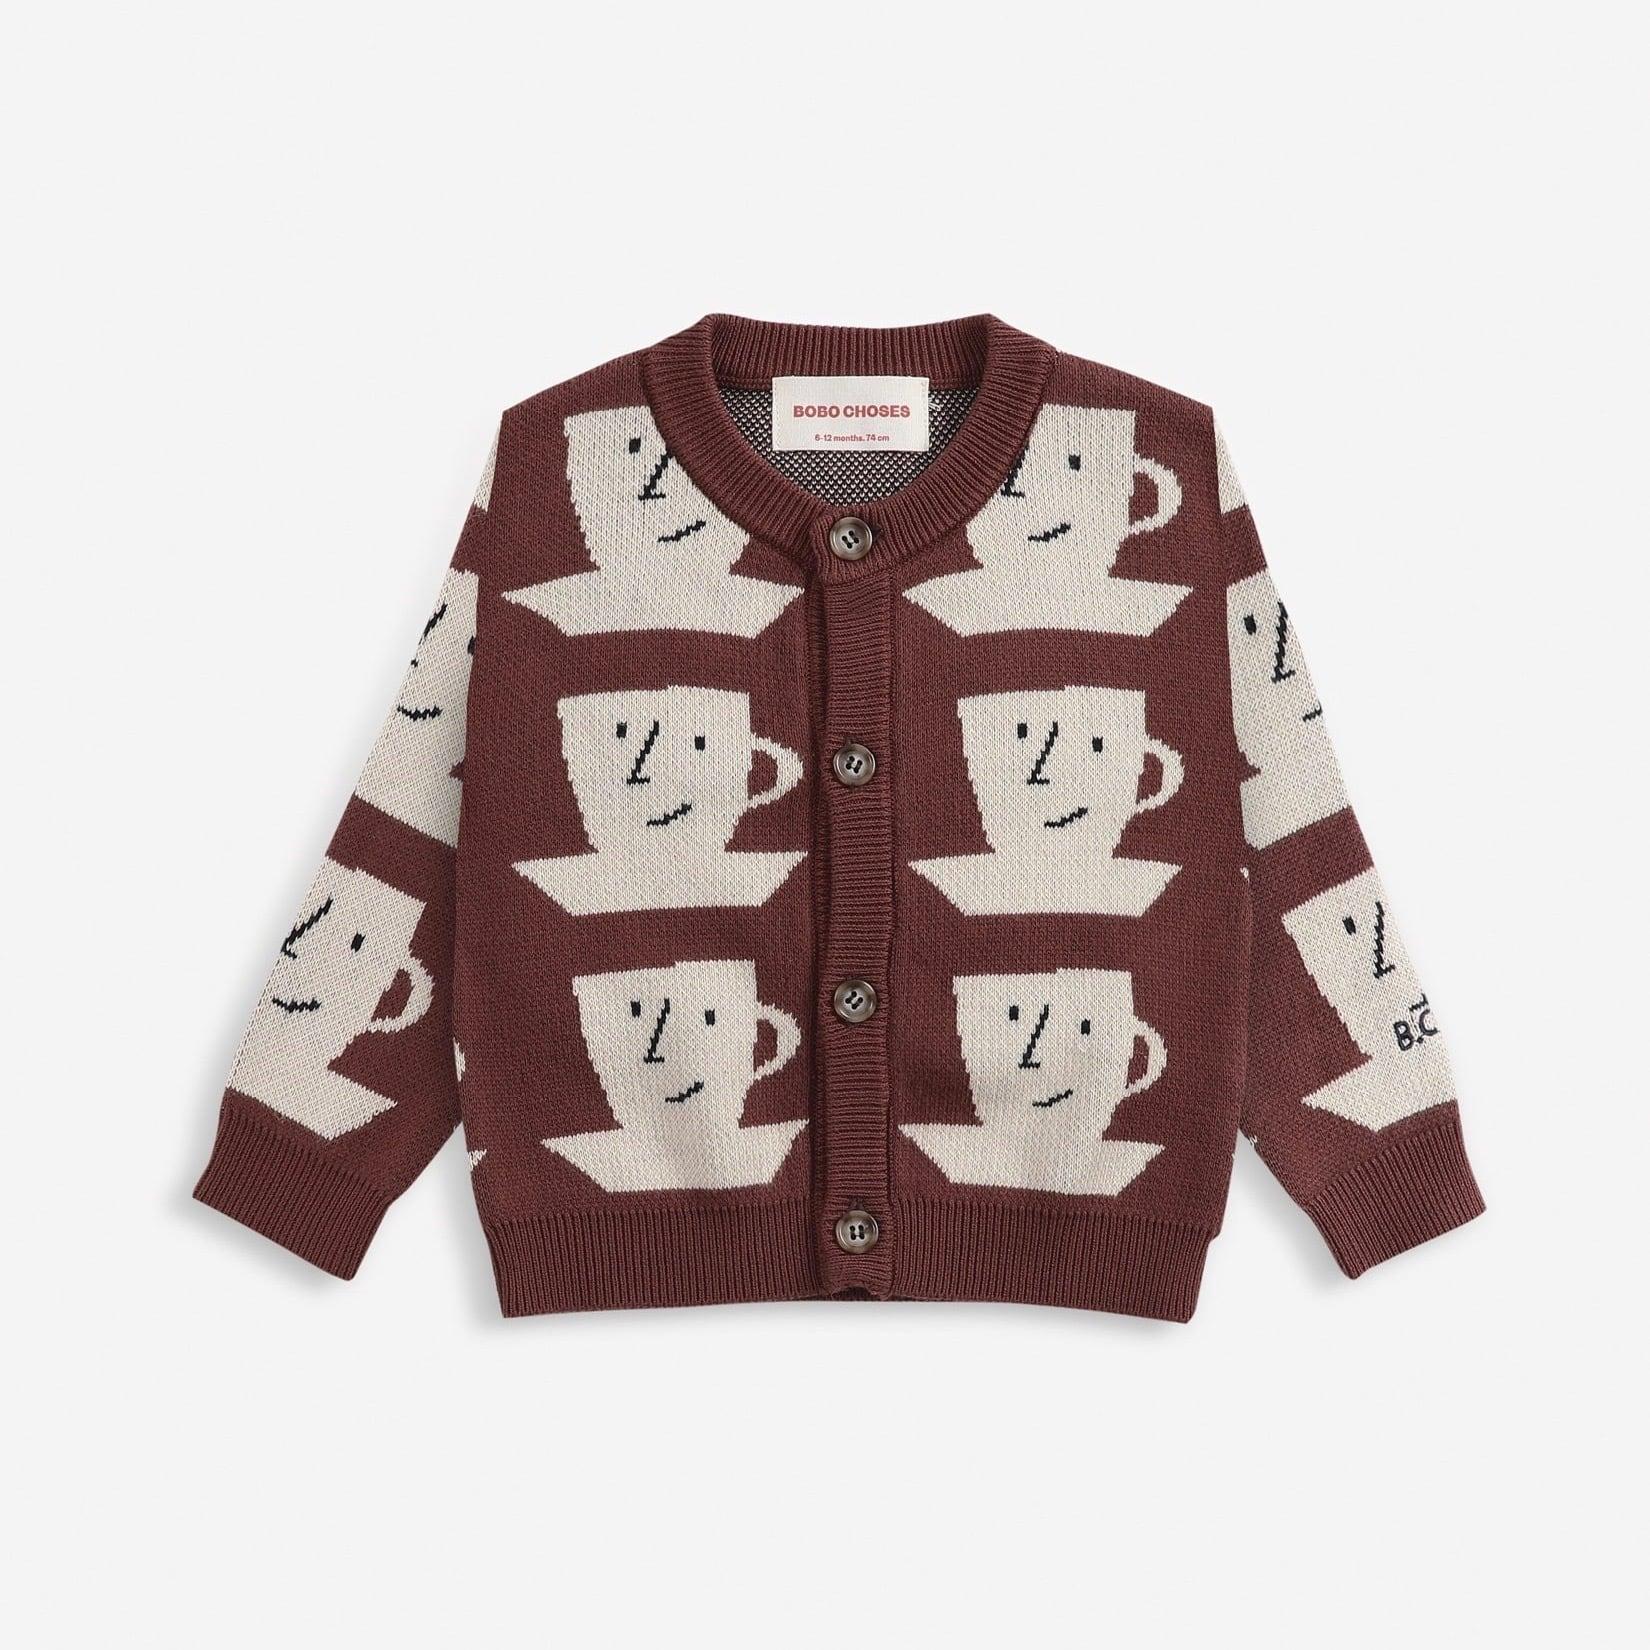 《BOBO CHOSES 2021AW》Cup Of Tea knitted cardigan / 12-36M